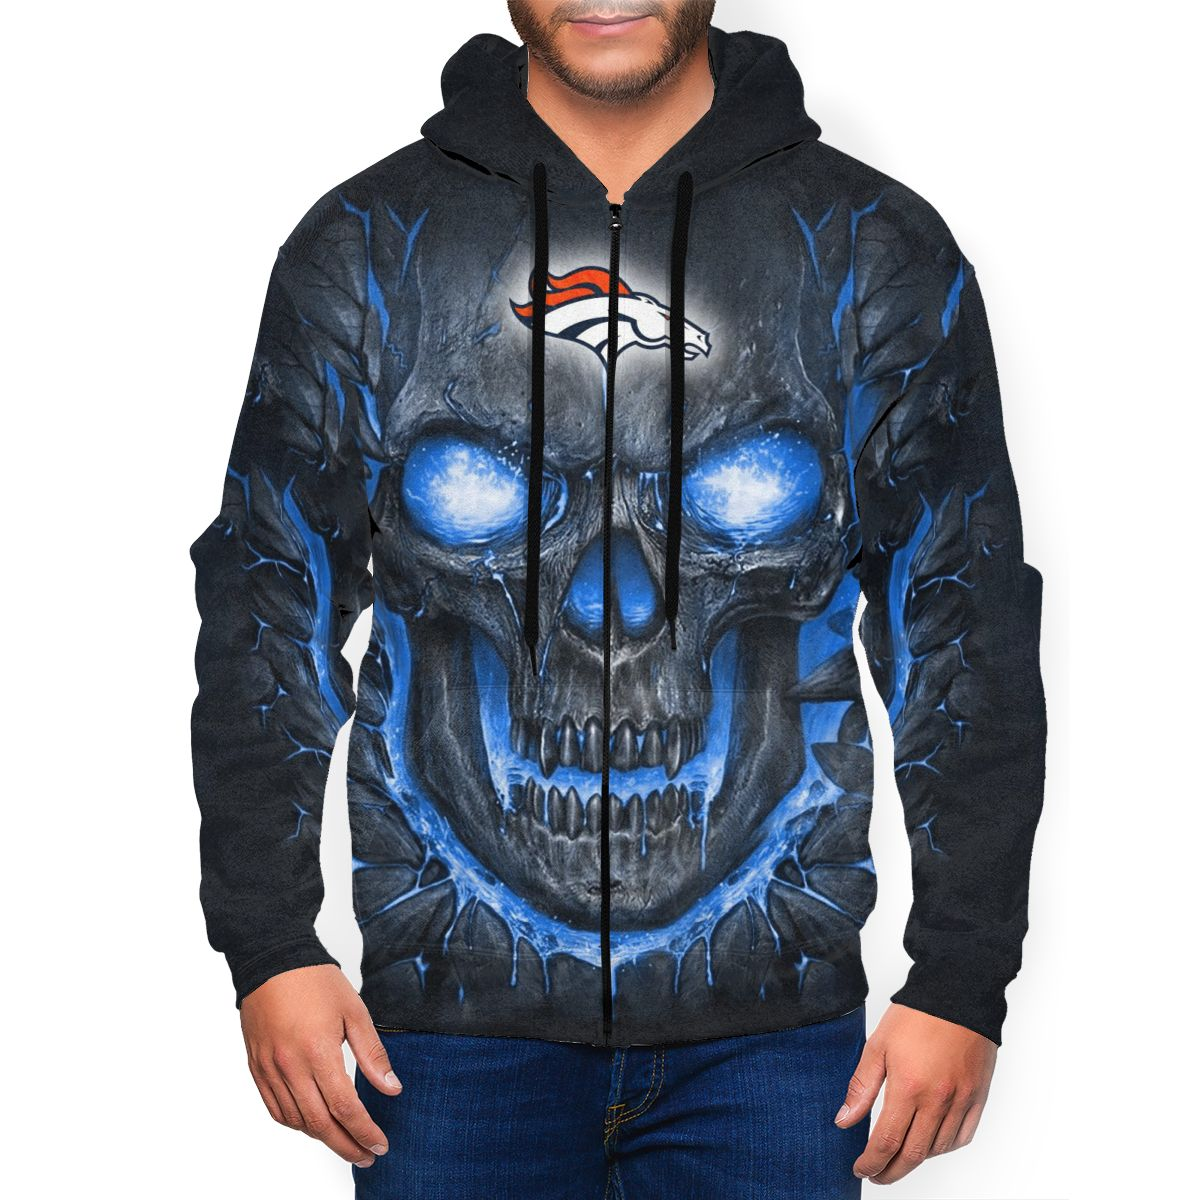 Broncos Skull Lava Men's Zip Hooded Sweatshirt